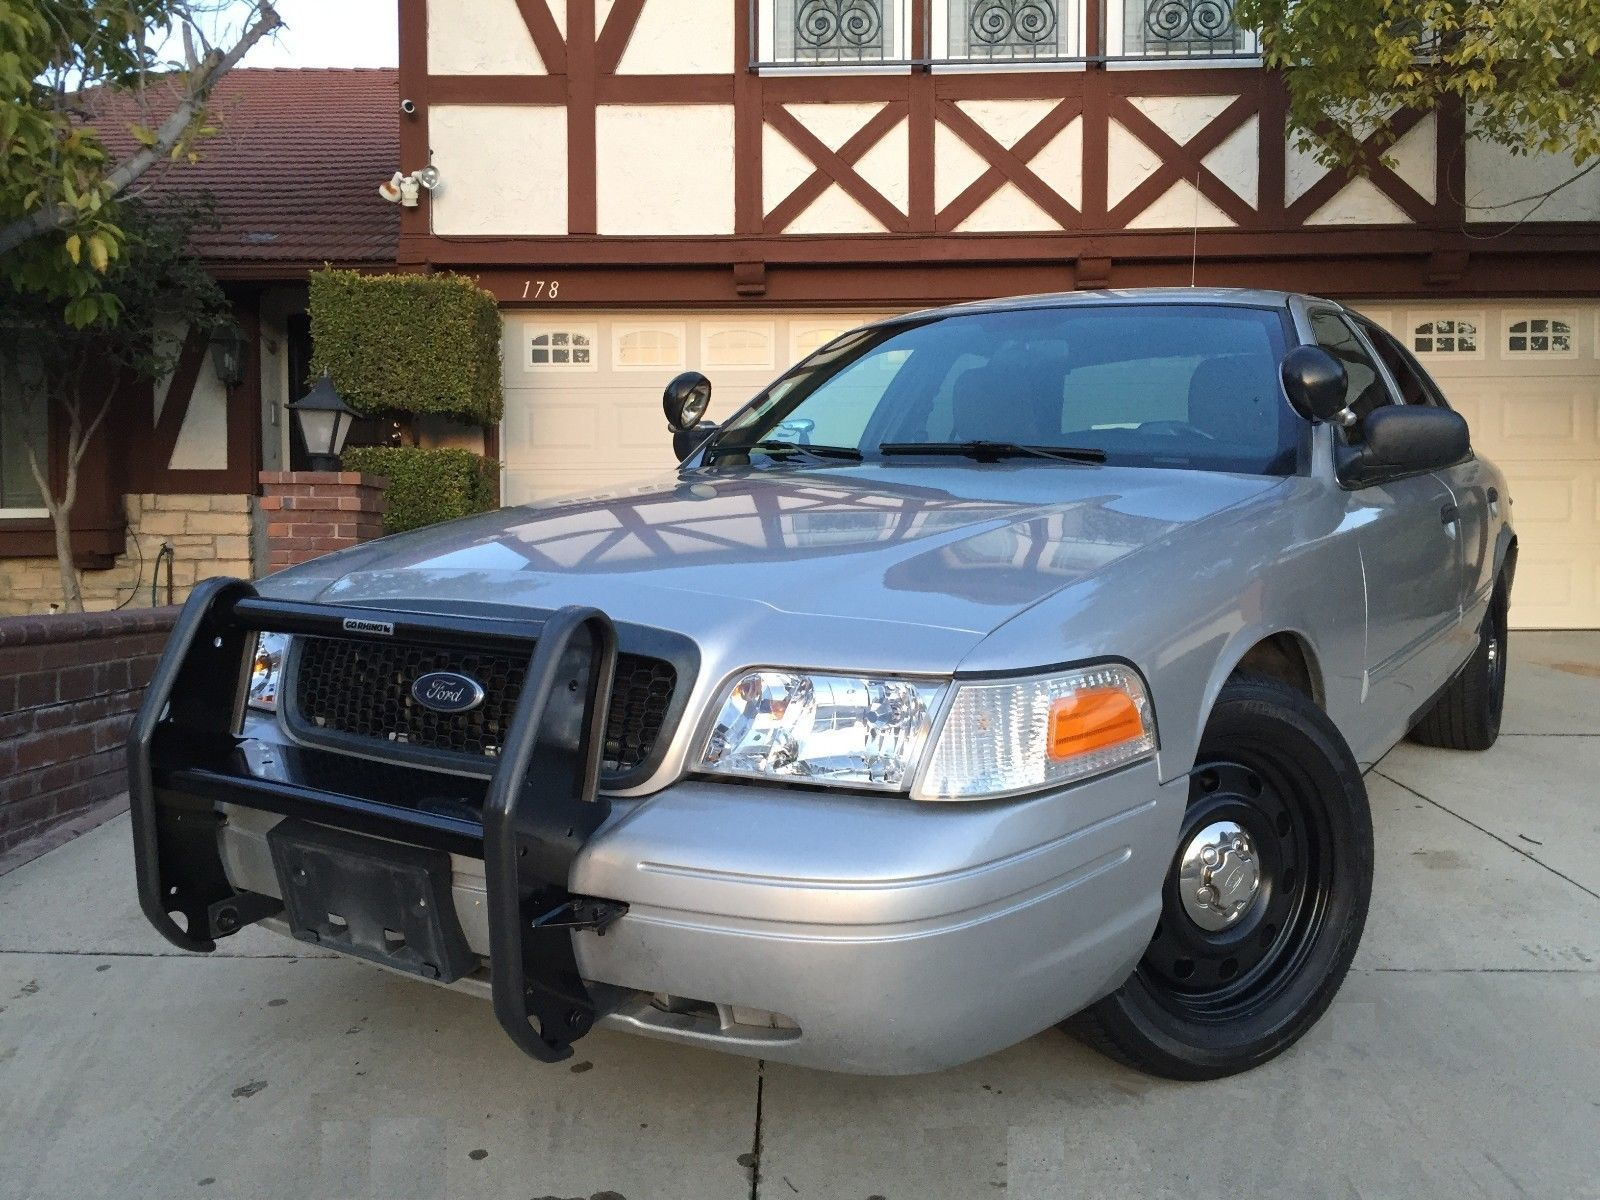 2011 ford crown victoria police interceptor sedan 4 door 2011 ford crown victoria police interceptor sedan 4 door